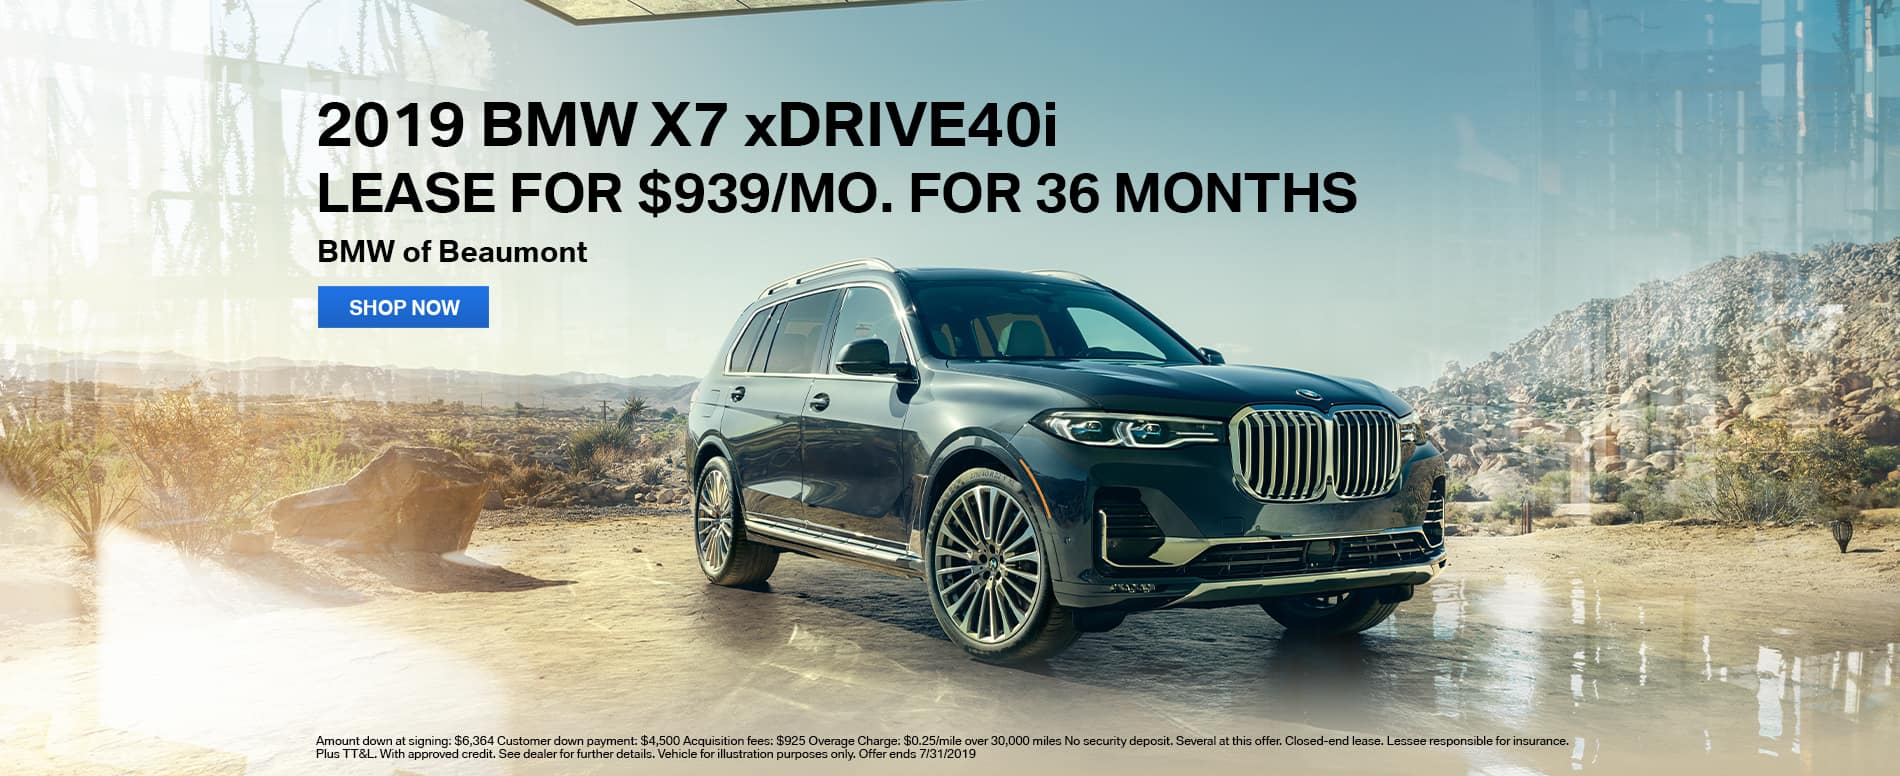 lease-2019-bmw-x7-xdrive40i-for-939-beaumont